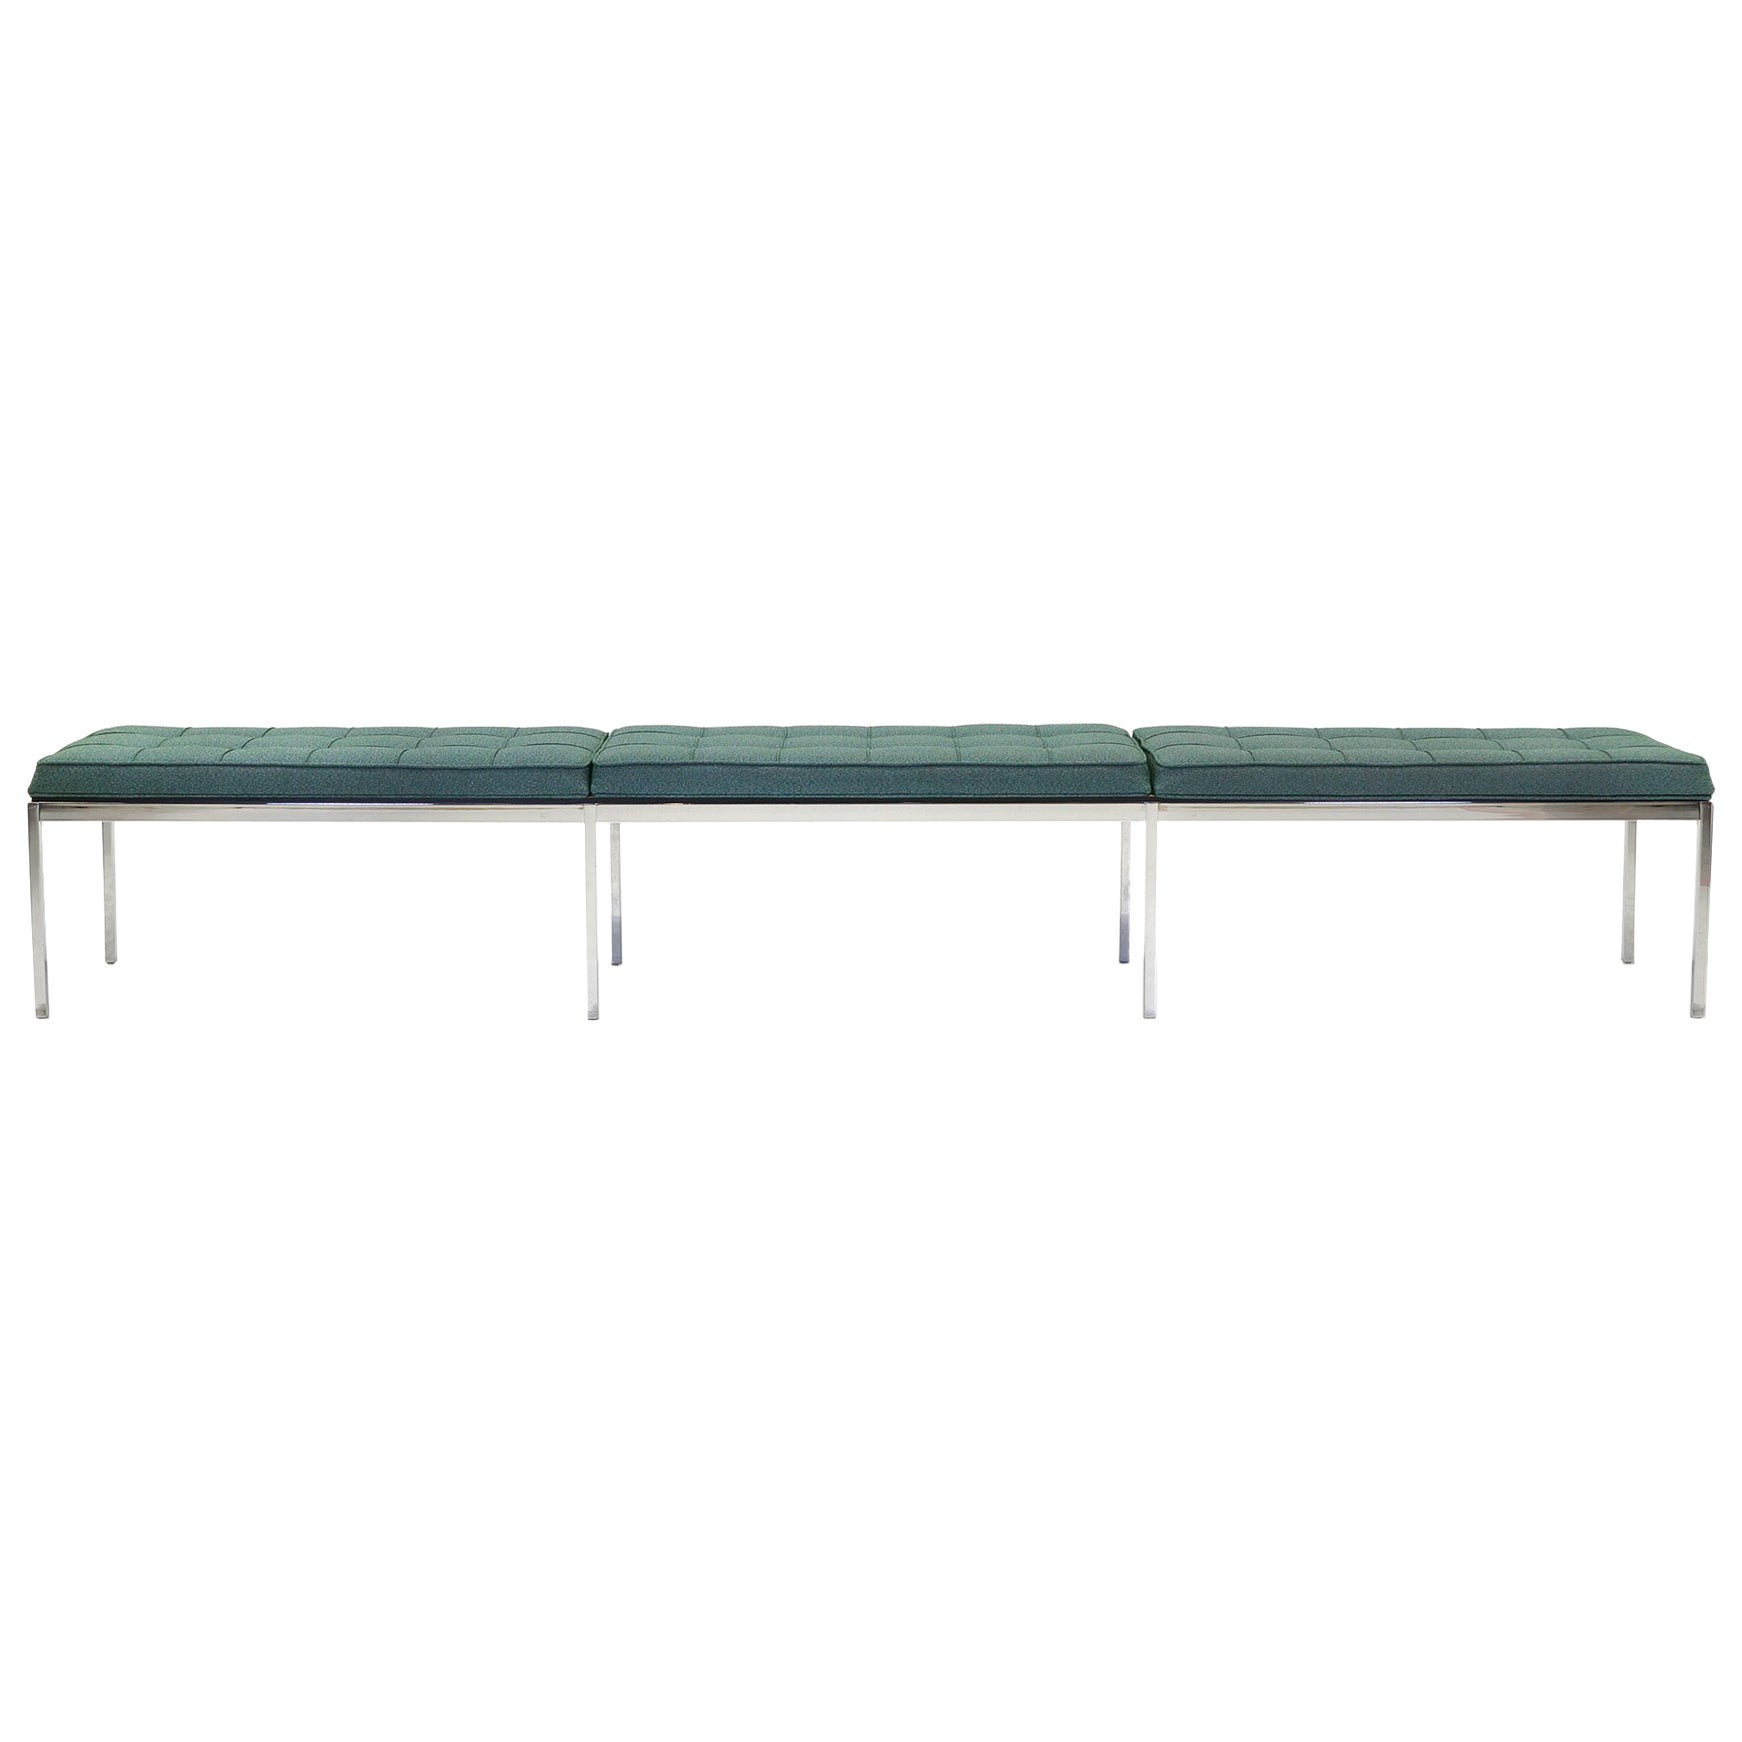 Florence Knoll Long Upholstered Bench At 1stdibs